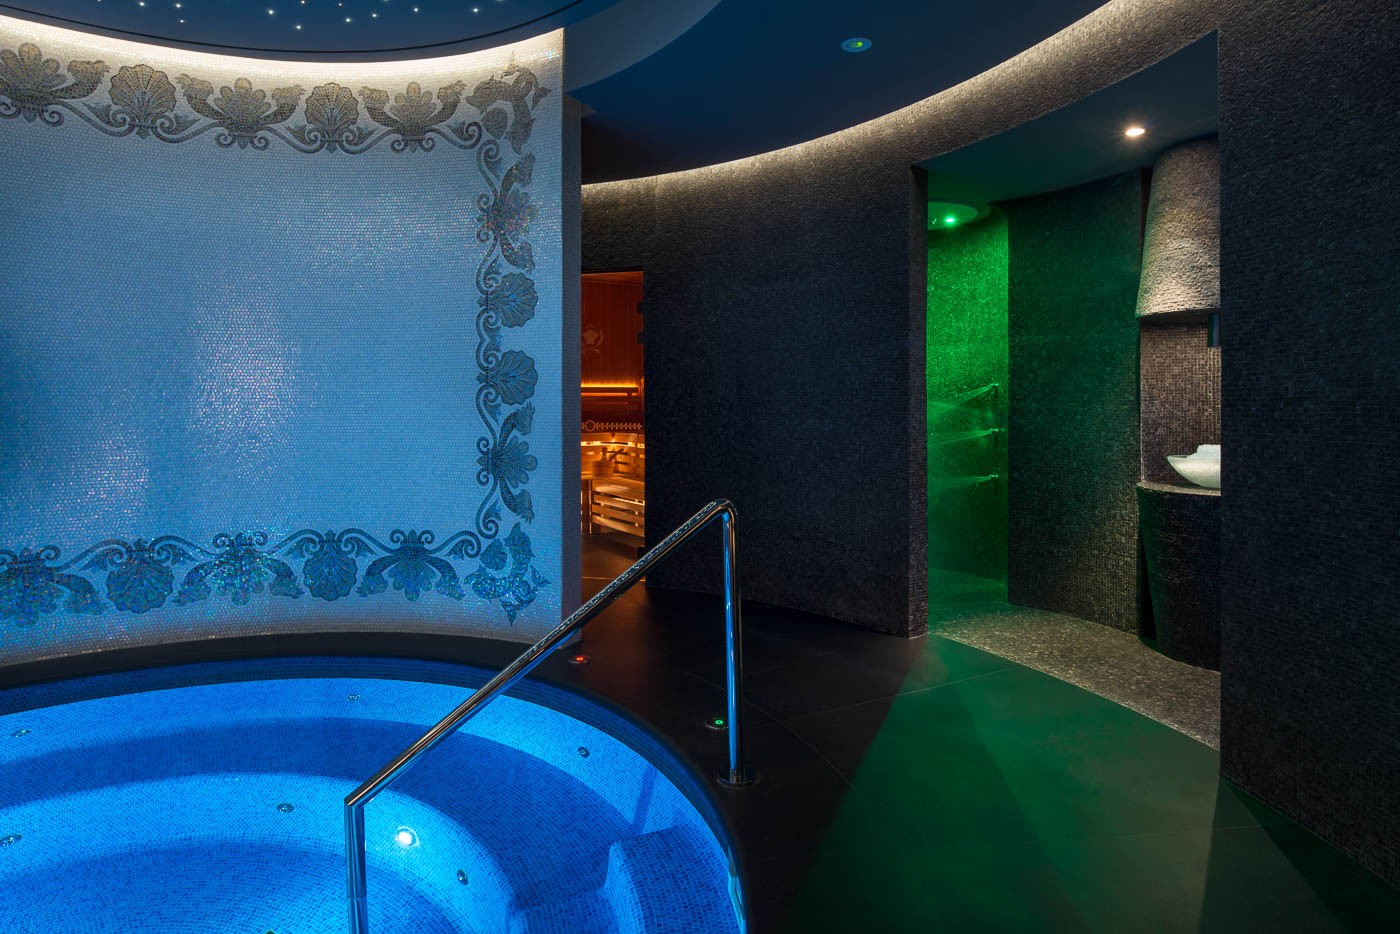 Hotel and resort photography - Spa, swimming pool and bathroom ...